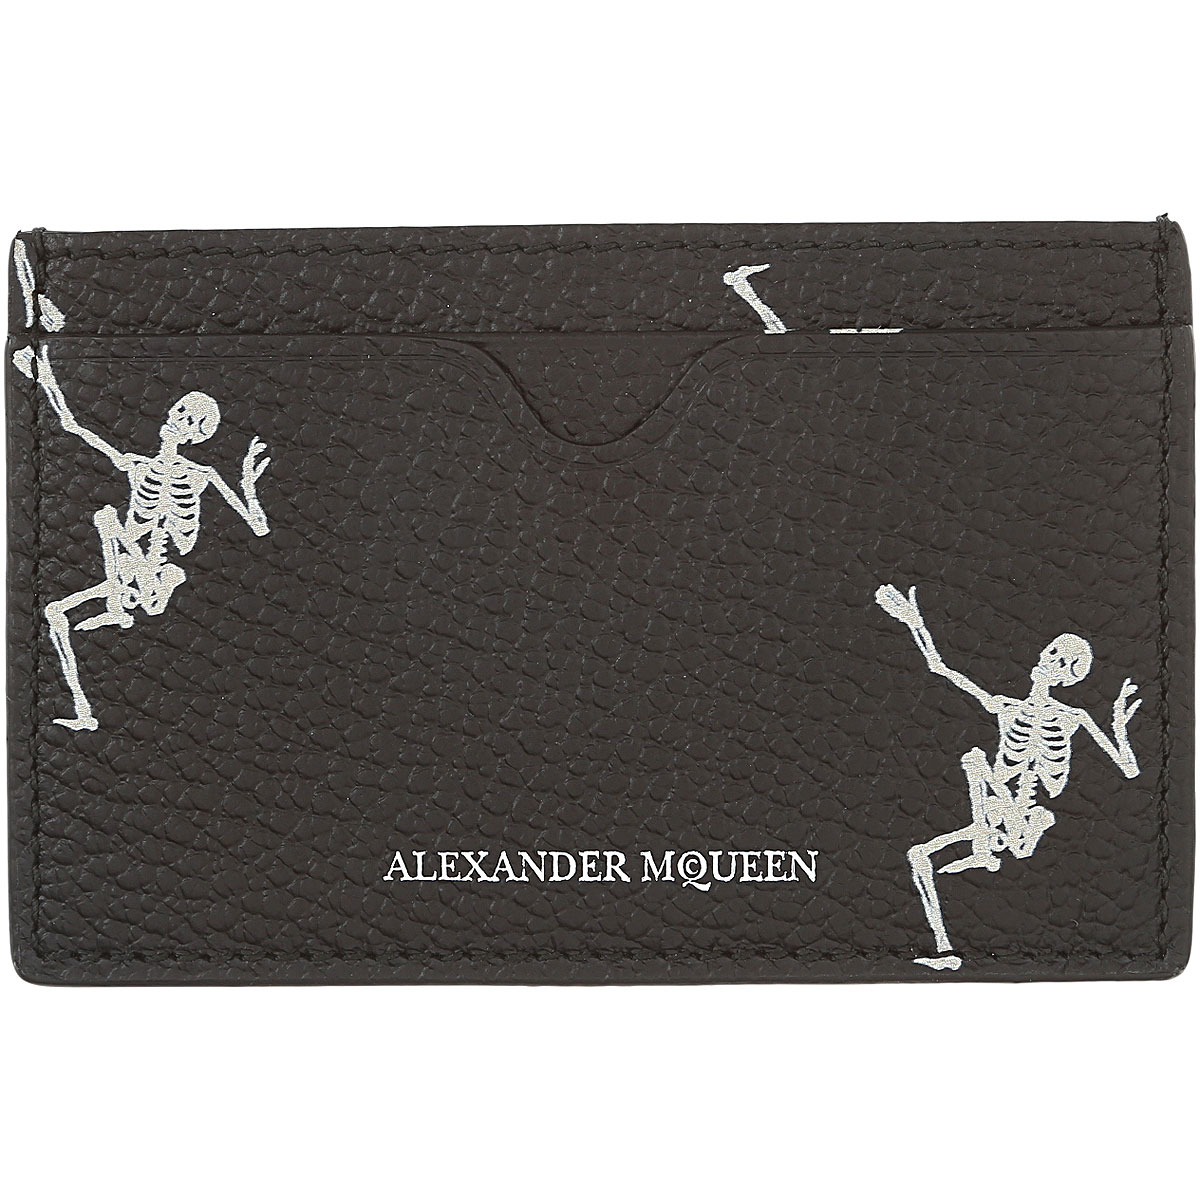 Image of Alexander McQueen Mens Wallets, Black, Leather, 2017